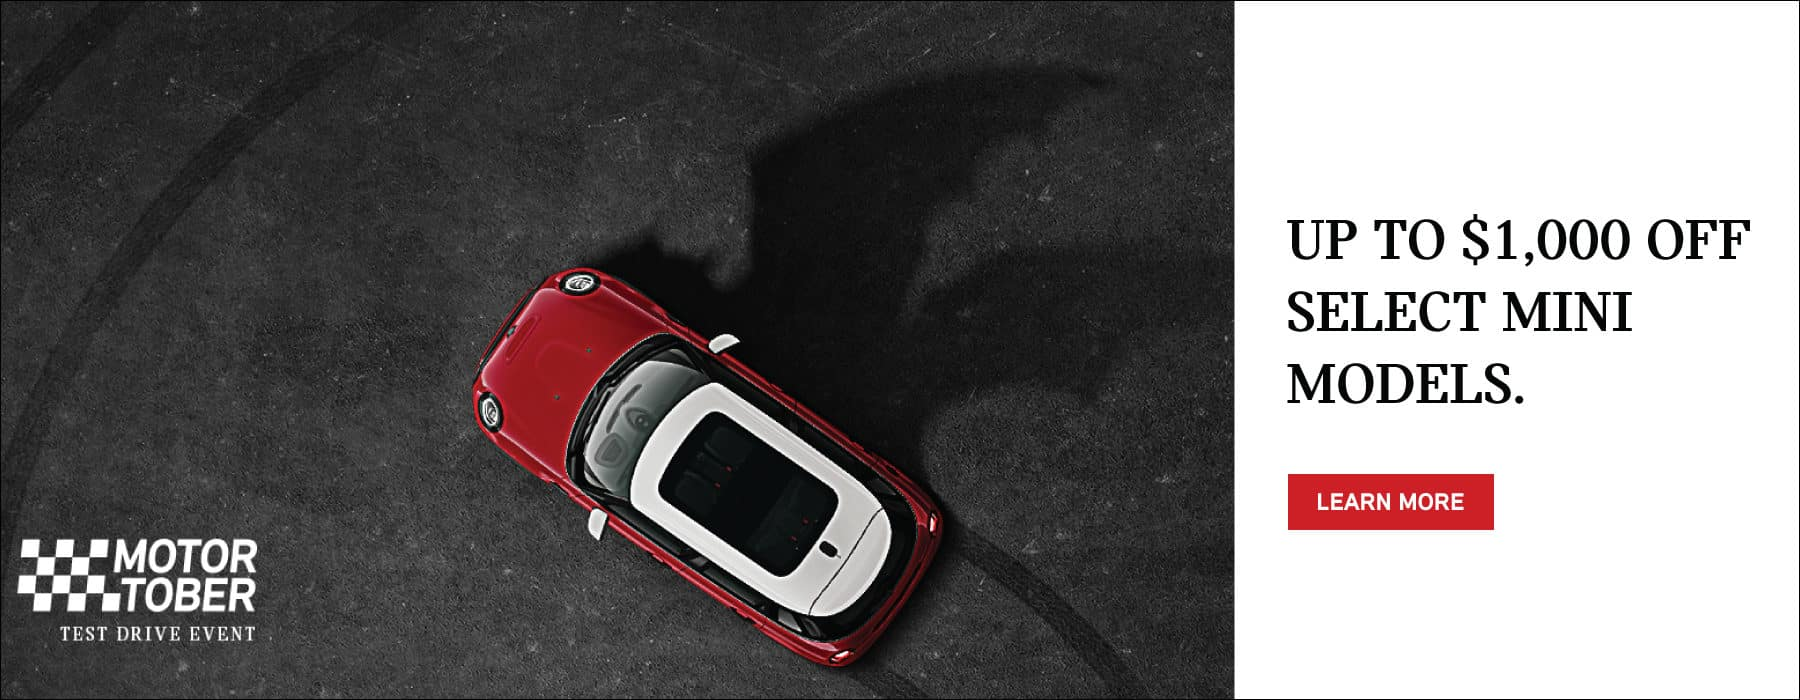 UP TO $1,000 OFF SELECT 2022 MINI MODELS.